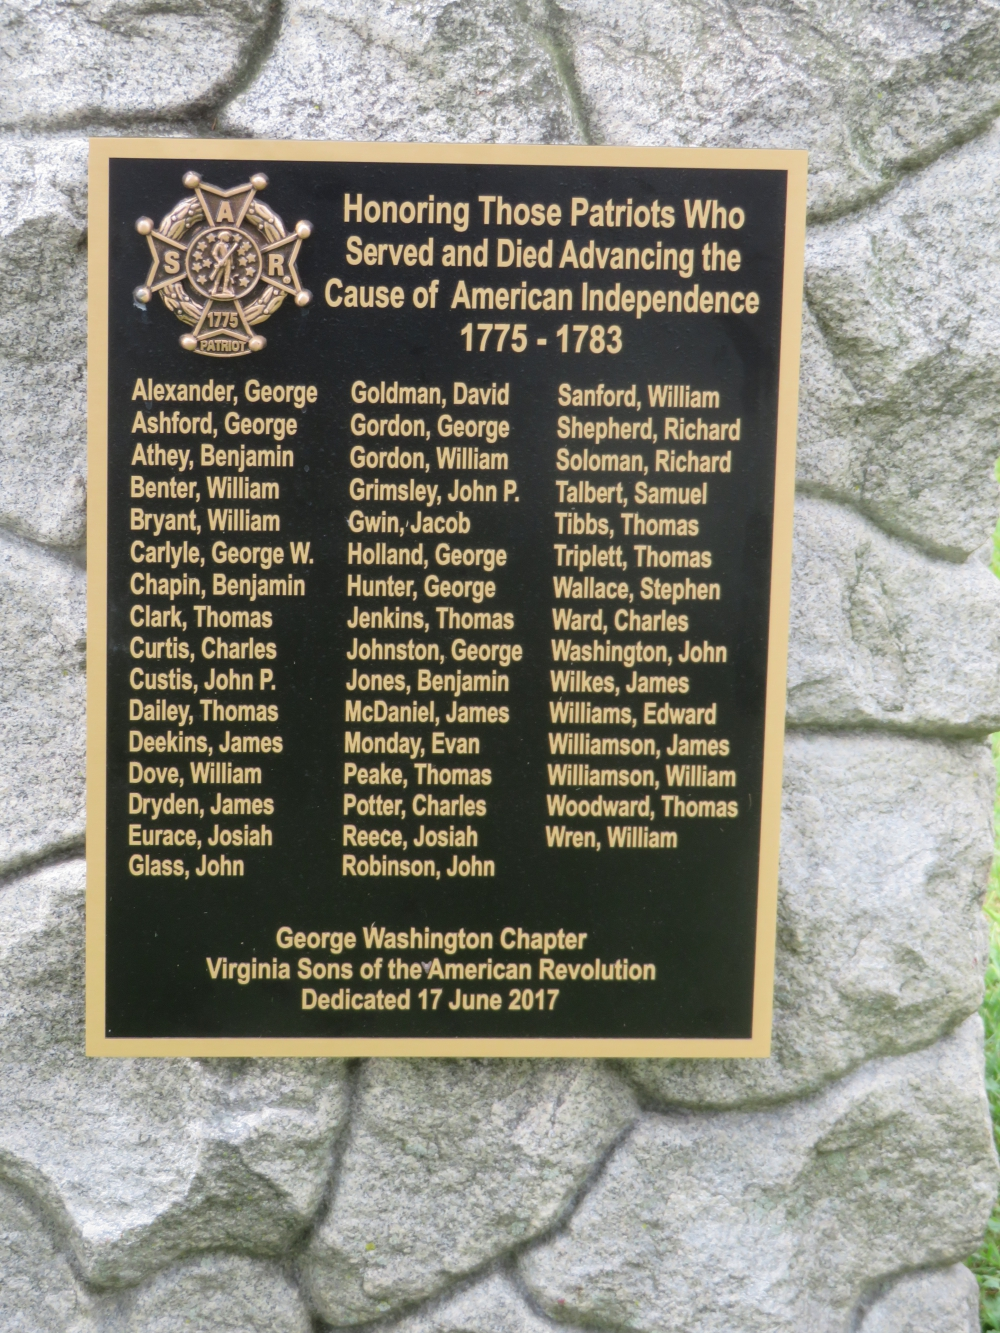 Fairfax County [Virginia] War Memorial, USA